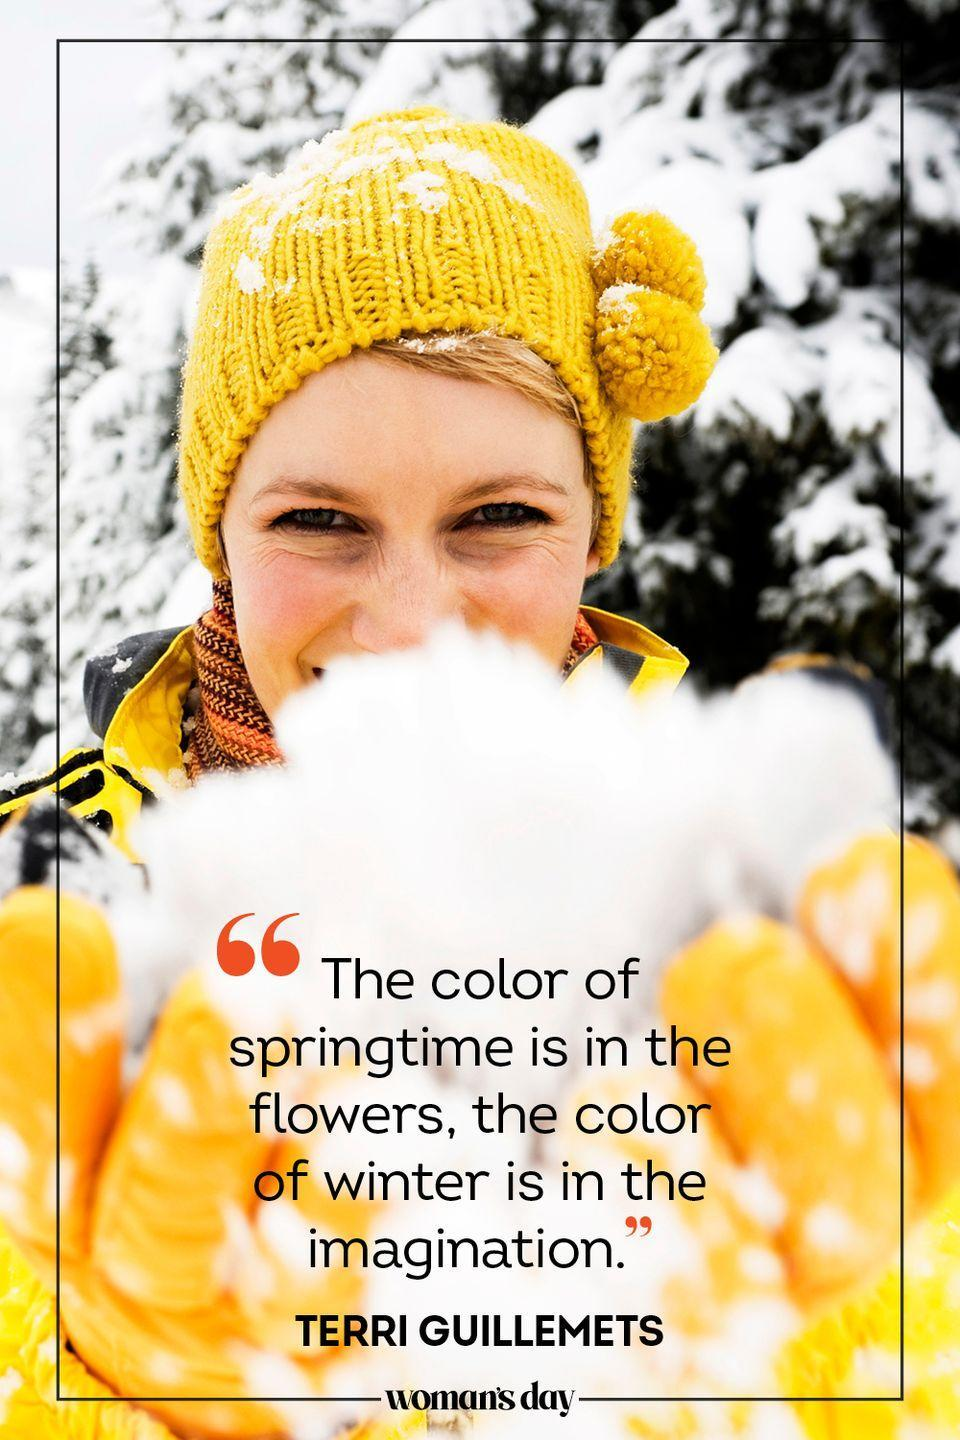 "<p>""The color of springtime is in the flowers, the color of <a href=""https://www.xavier.edu/jesuitresource/online-resources/quote-archive1/winter-quotes"" rel=""nofollow noopener"" target=""_blank"" data-ylk=""slk:winter"" class=""link rapid-noclick-resp"">winter</a> is in the imagination."" — Terri Guillemets</p>"